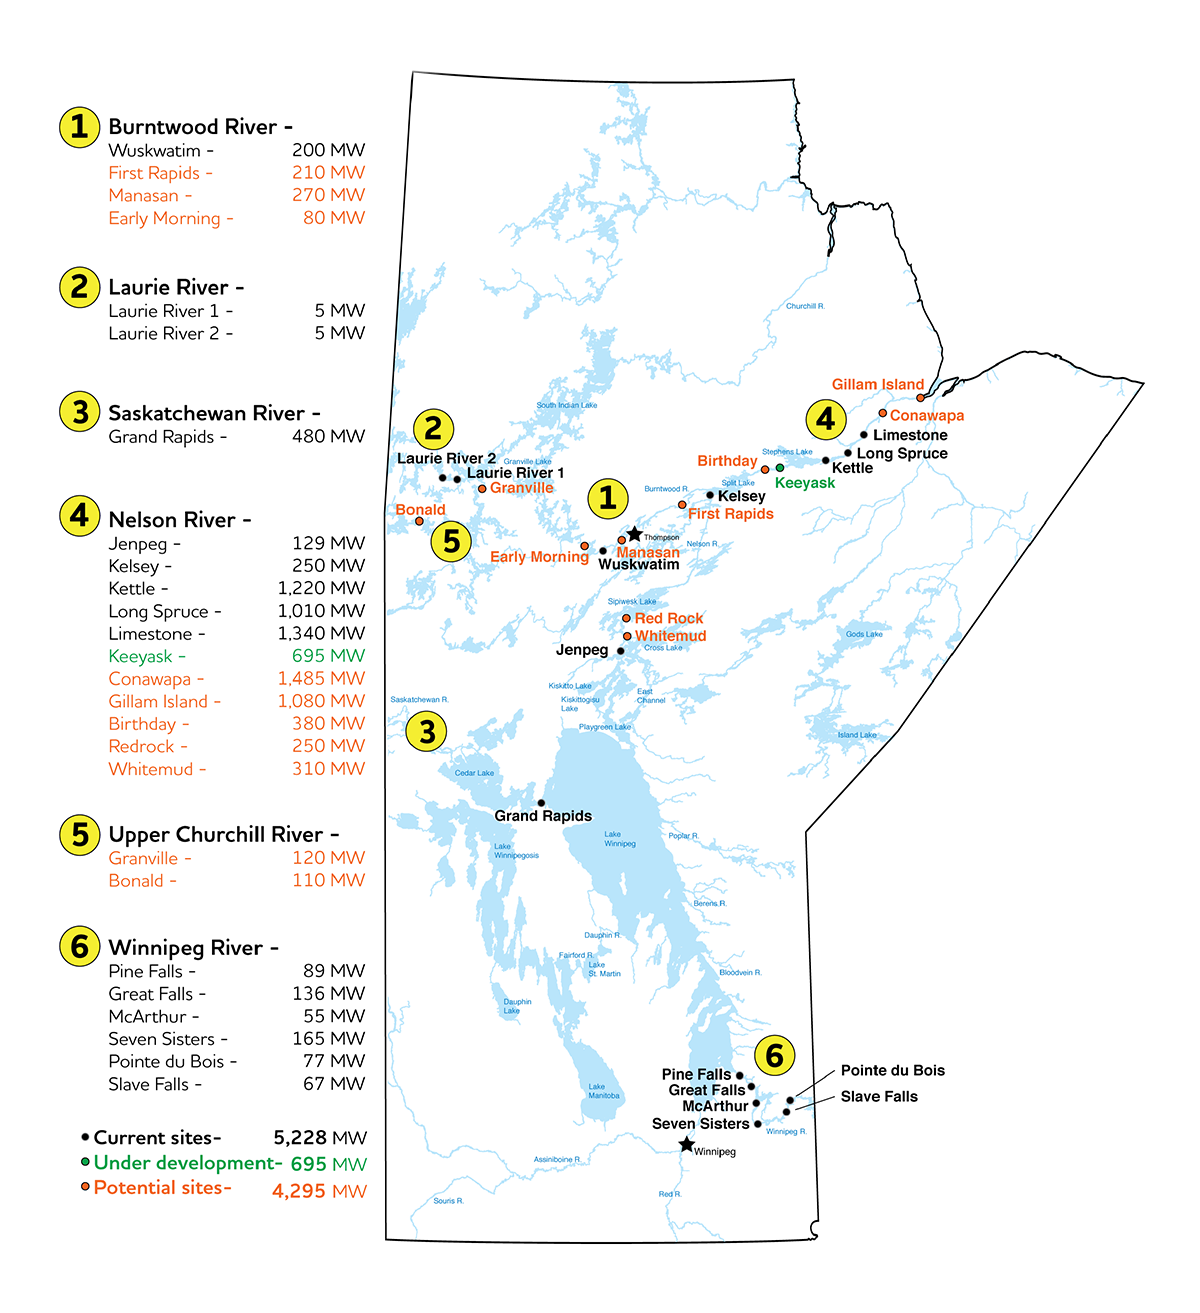 Current, under development and potential hydro development sites.